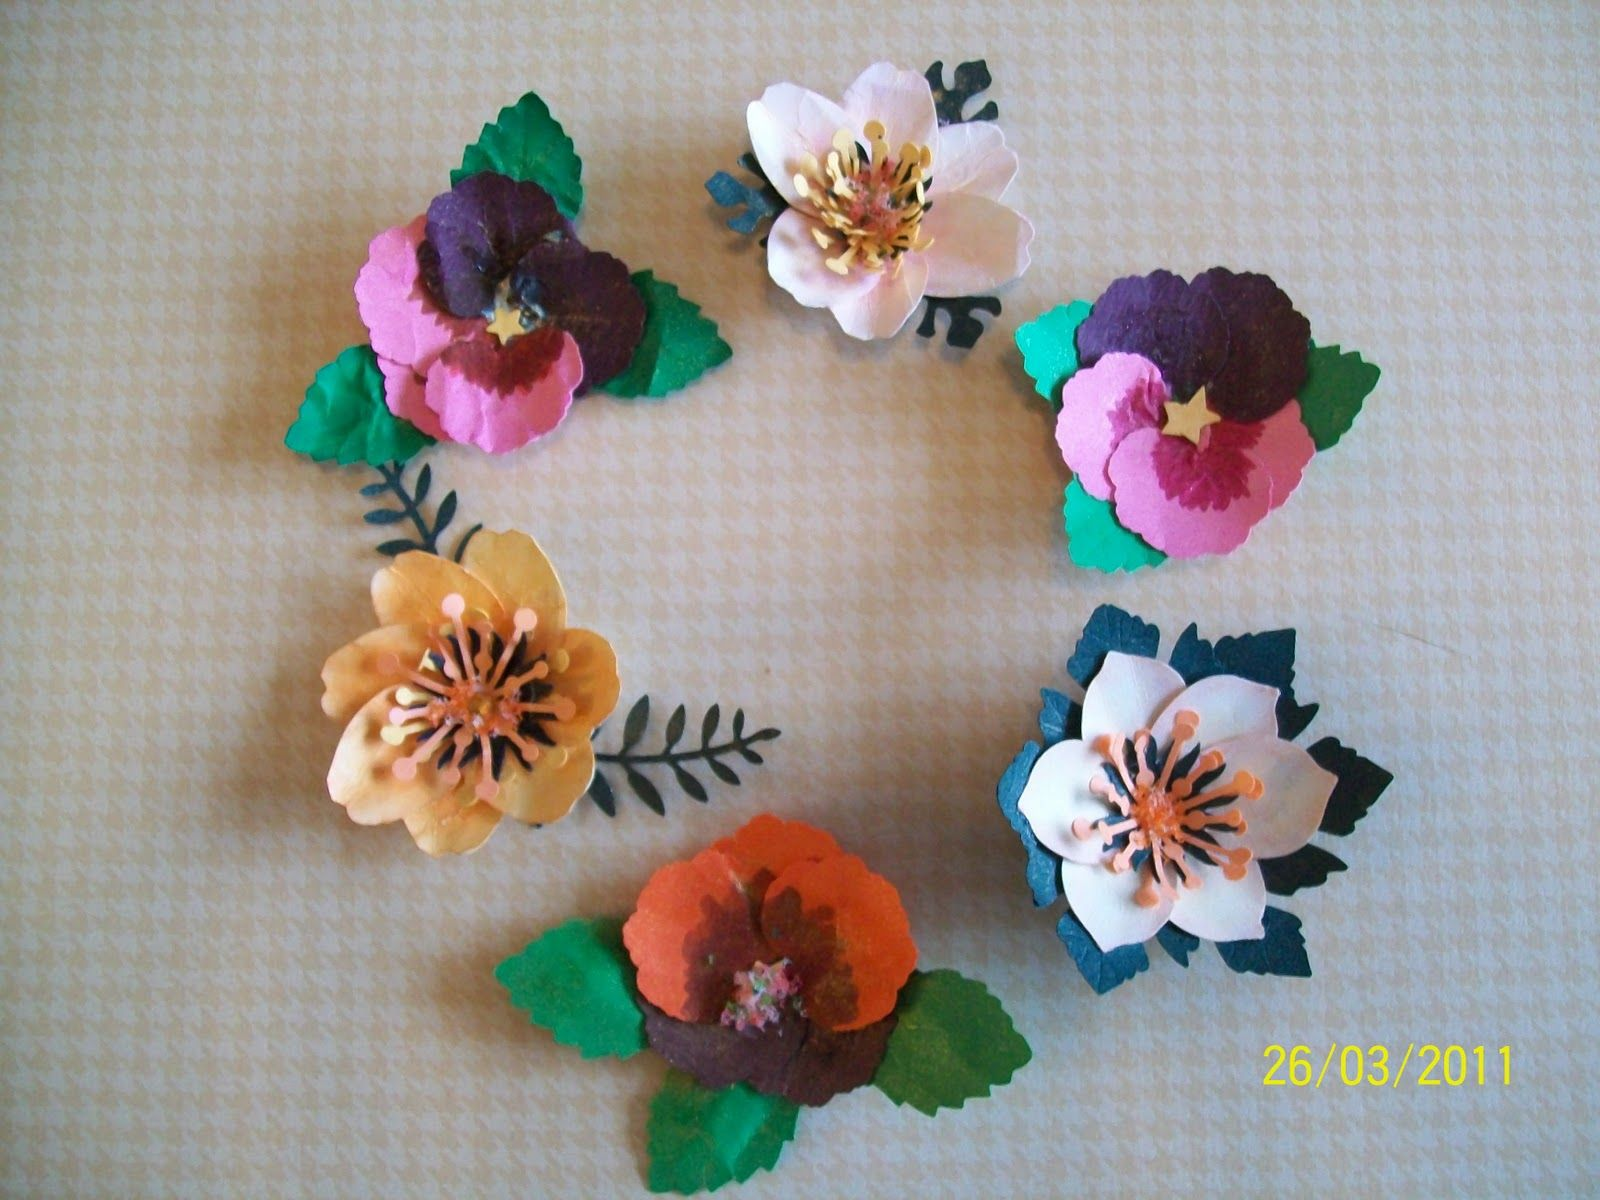 Home make paper flowers these were made using the cupping home make paper flowers these were made using the cupping pinching and bending mightylinksfo